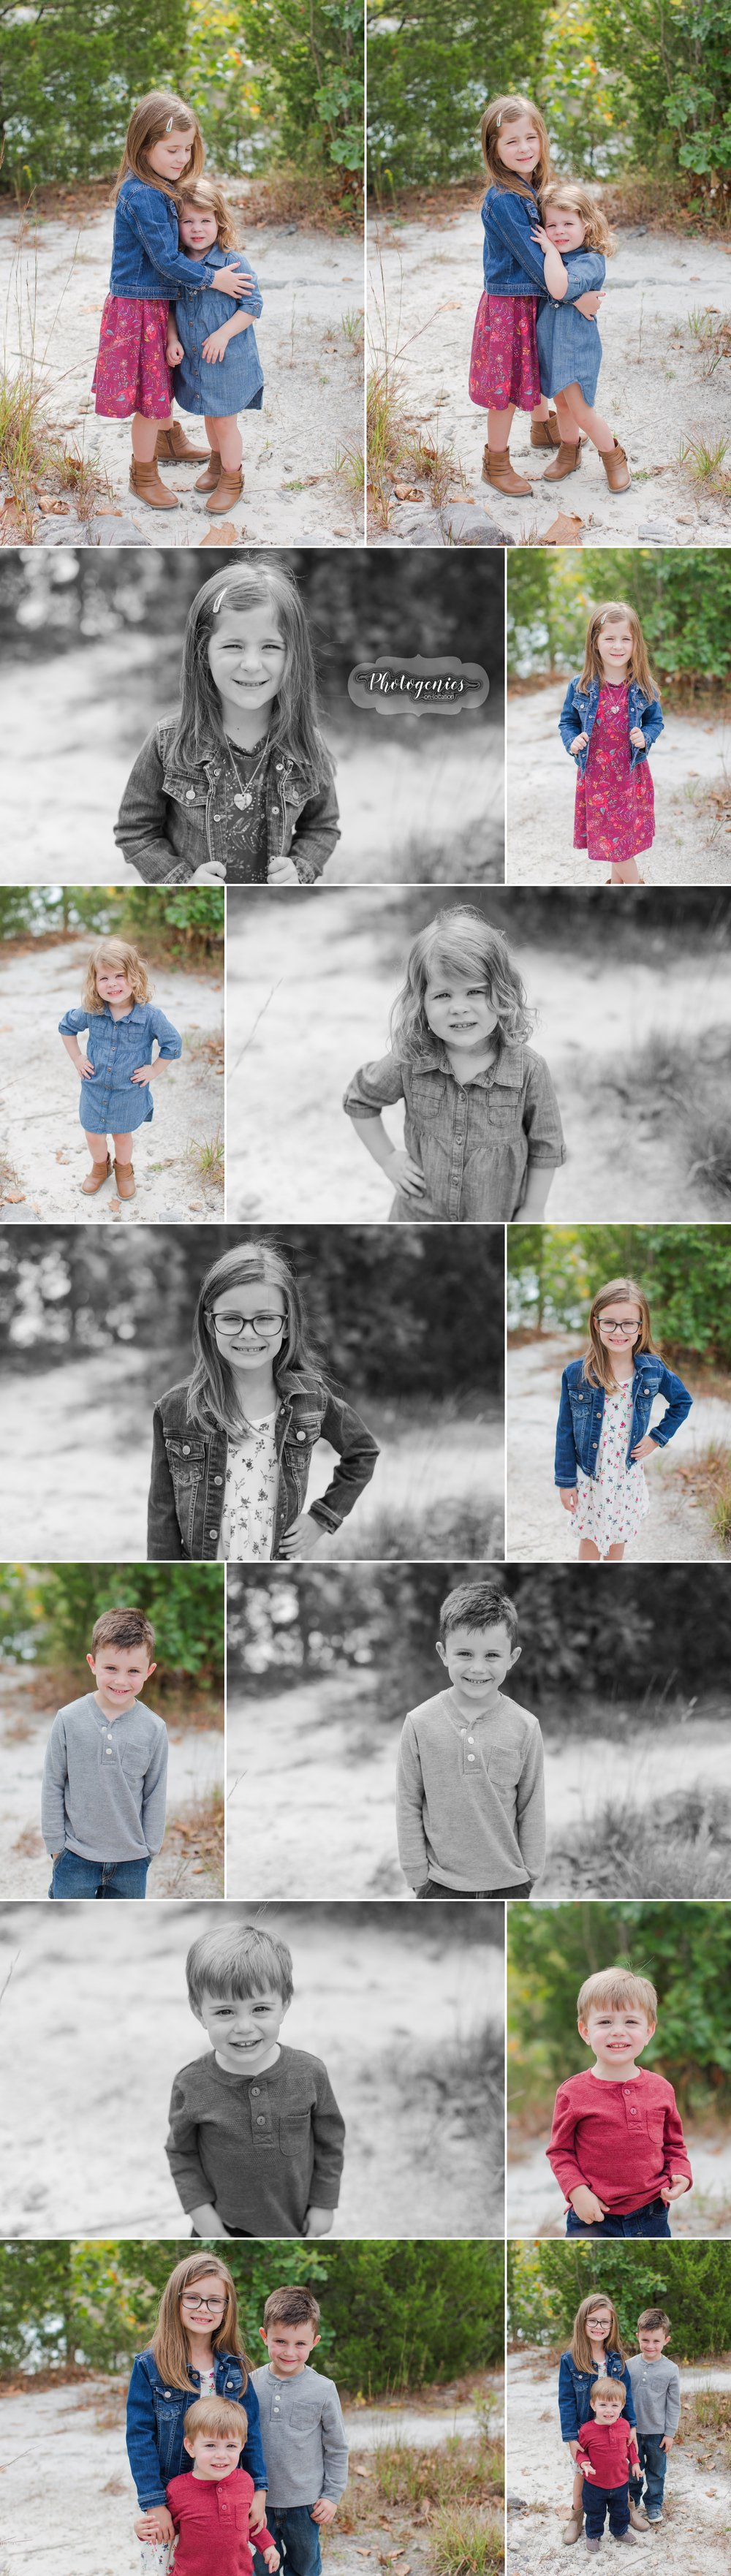 extended_family_session_photography_klondike_park_missouri_augusta_what_to_wear_fall 2